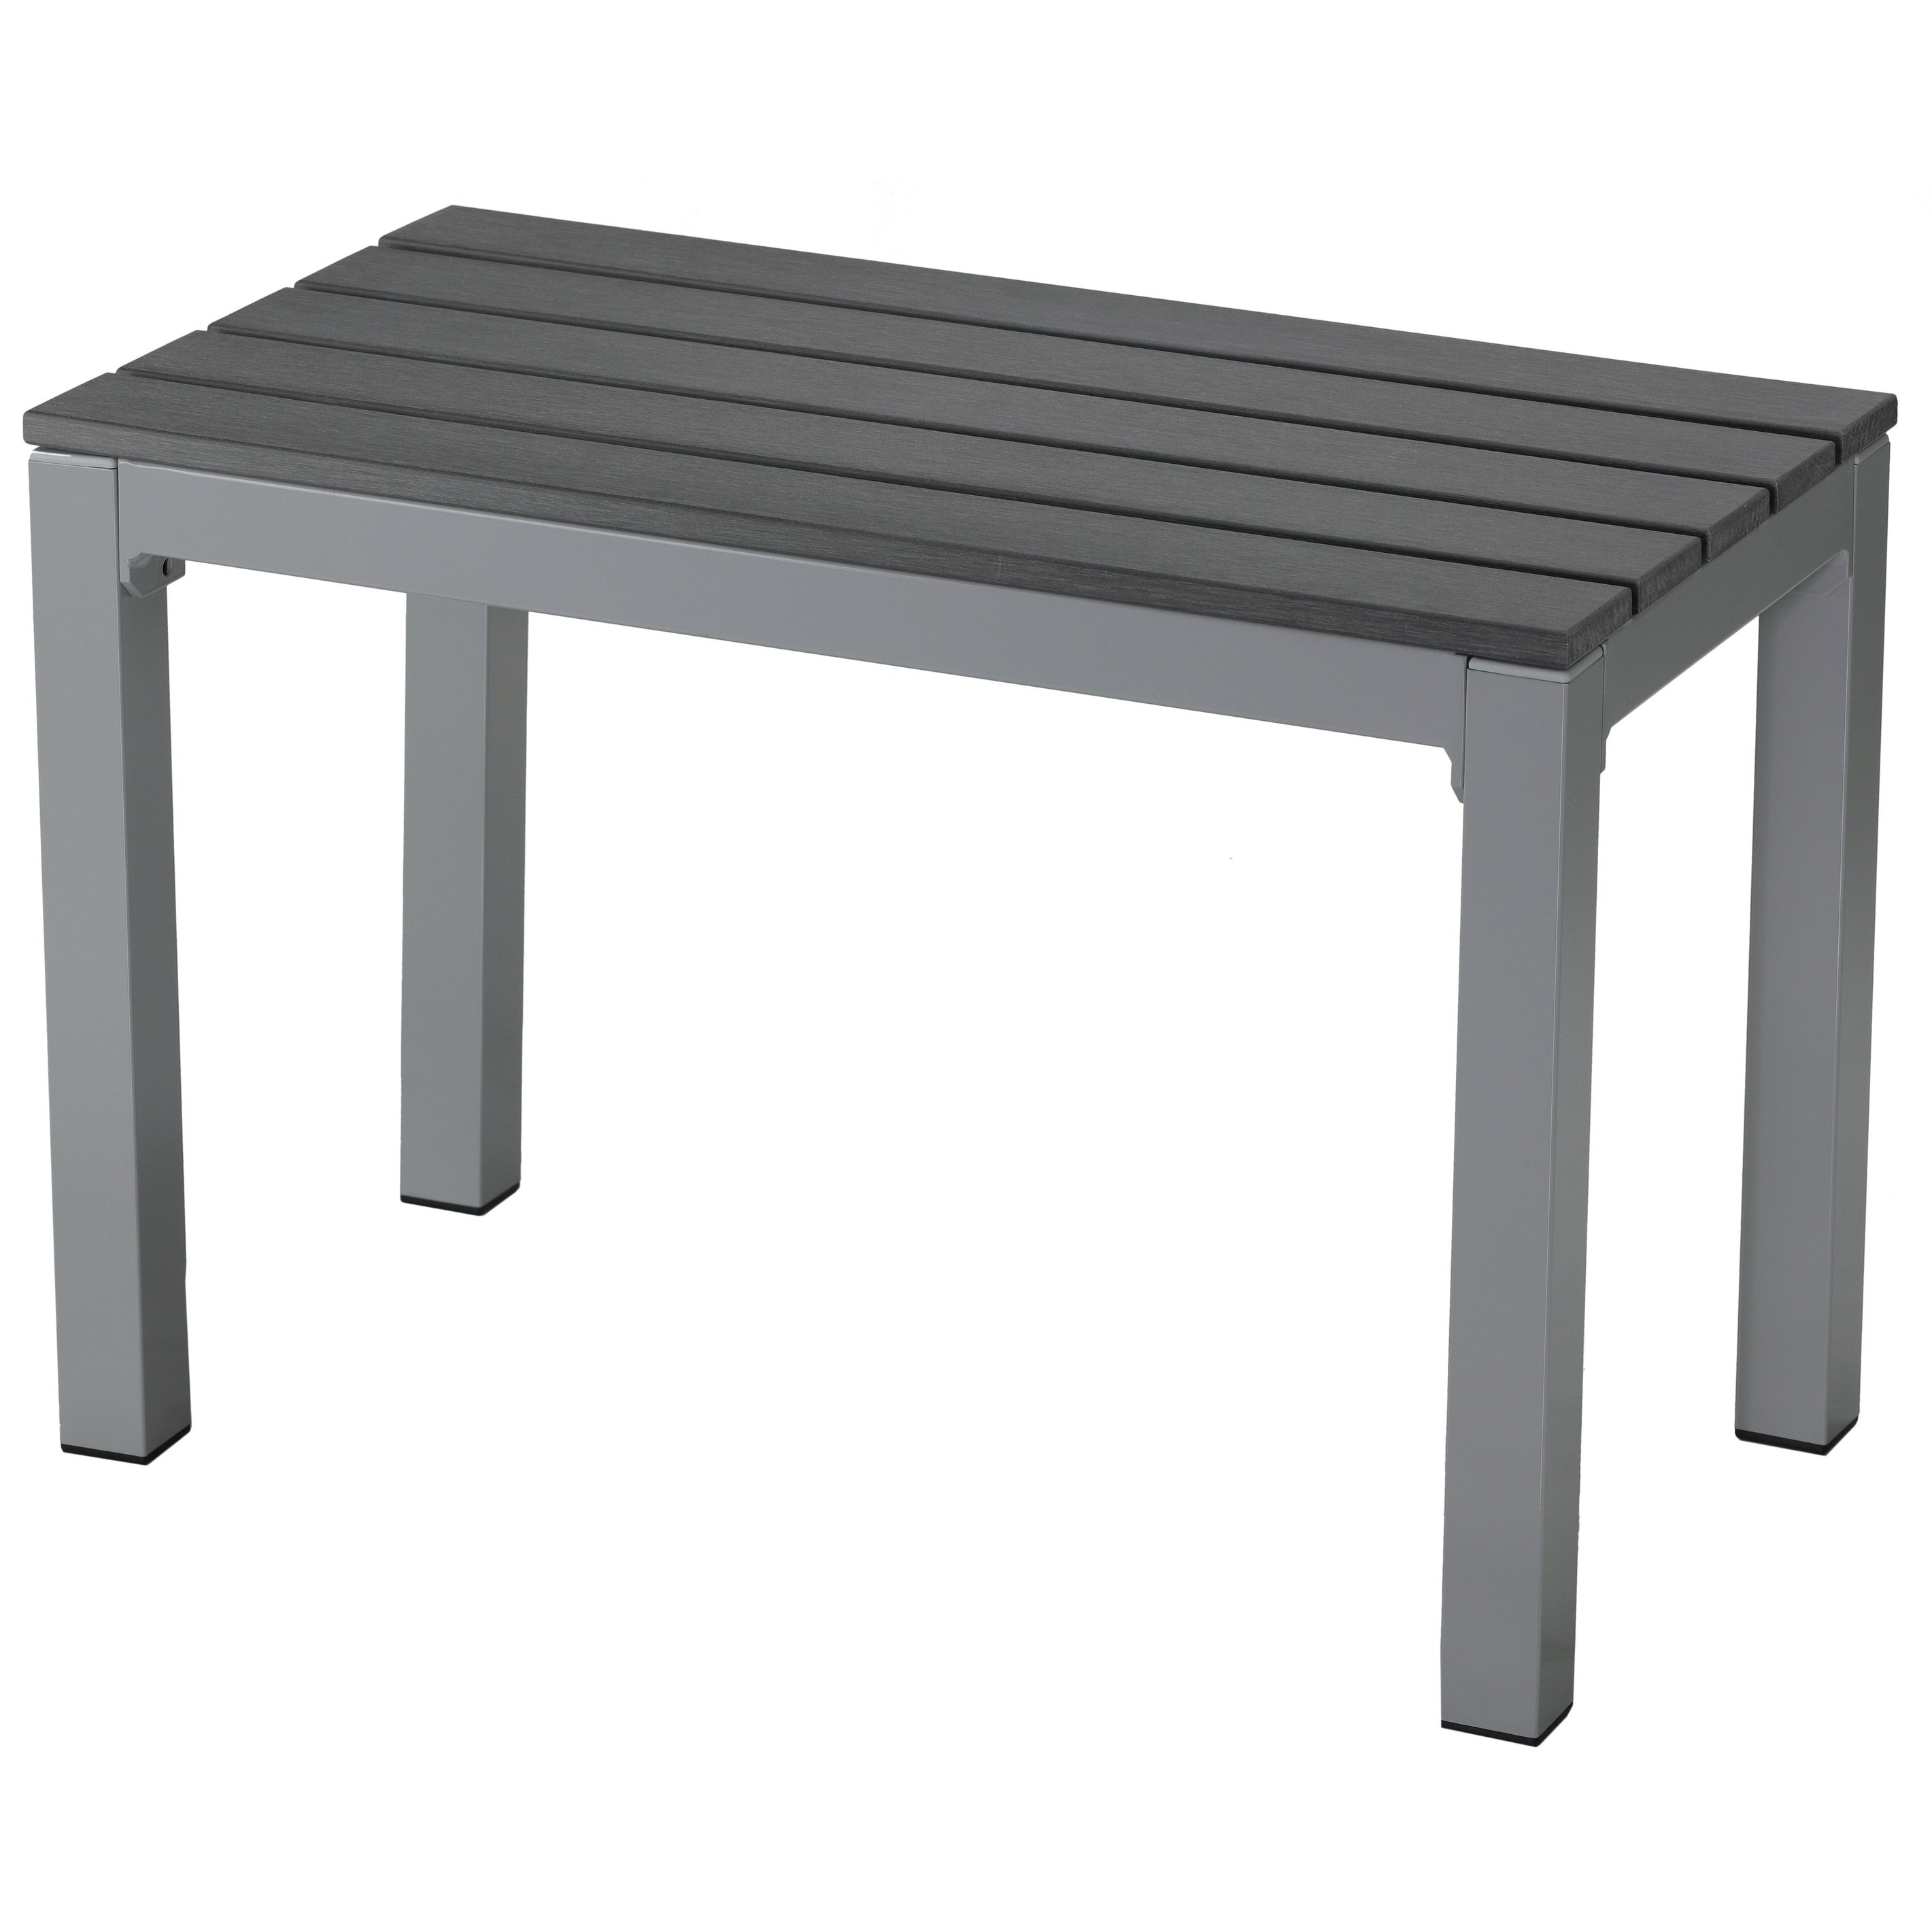 Shop Jaxon Aluminum Outdoor Bench In Poly Resin, Silver/slate Grey Pertaining To Well Known Jaxon Grey Rectangle Extension Dining Tables (View 11 of 25)